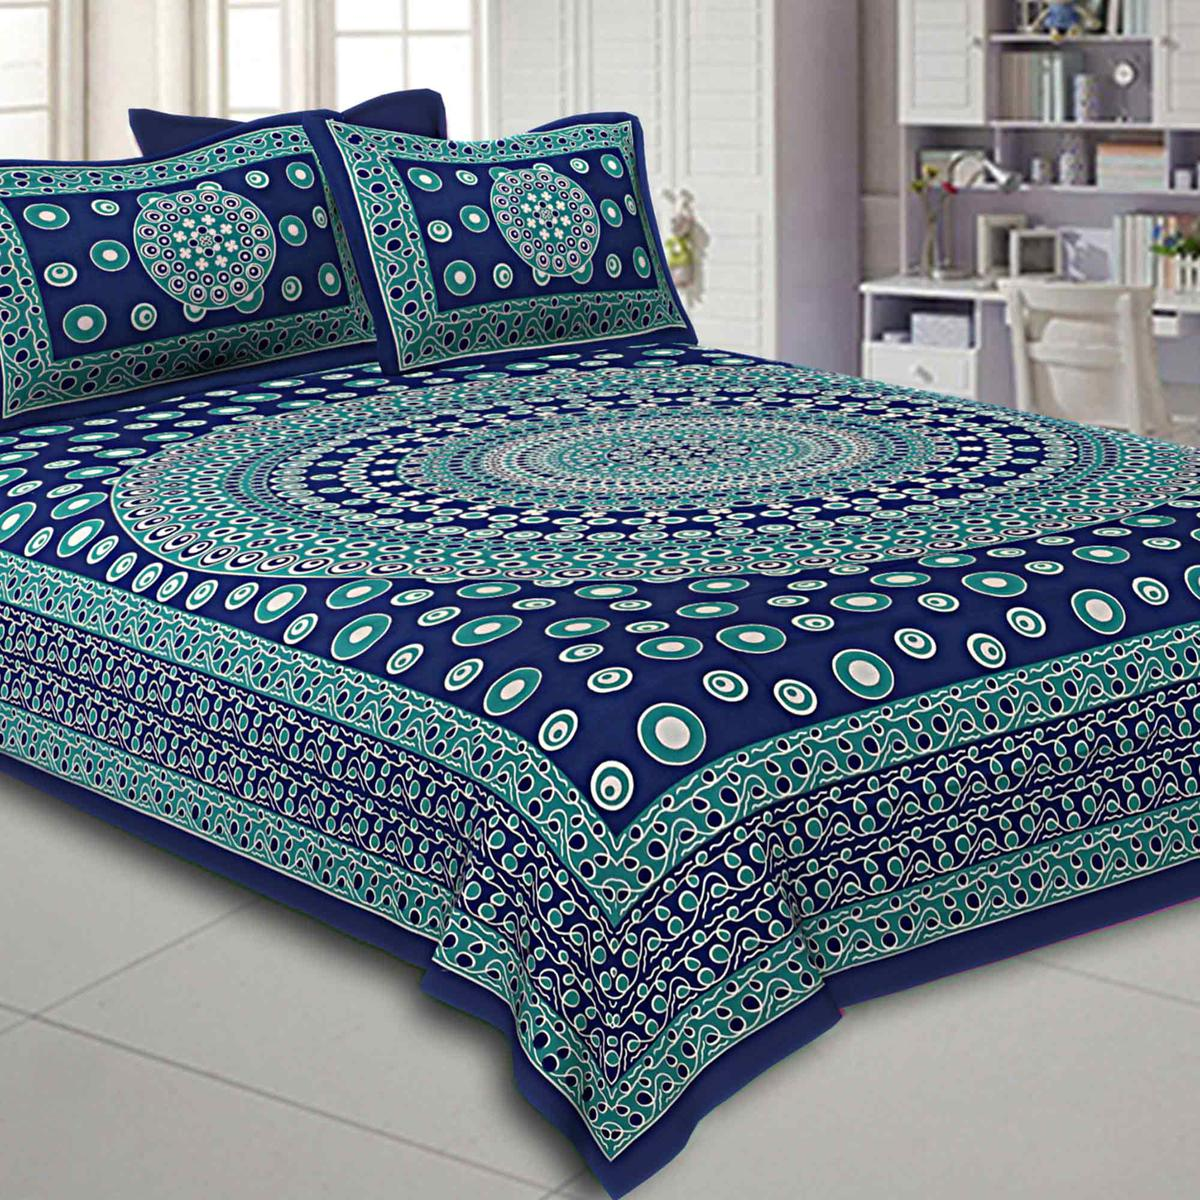 Elegant Blue Colored Rangoli Printed Pure Cotton Double Bedsheet With Pillow Cover Set